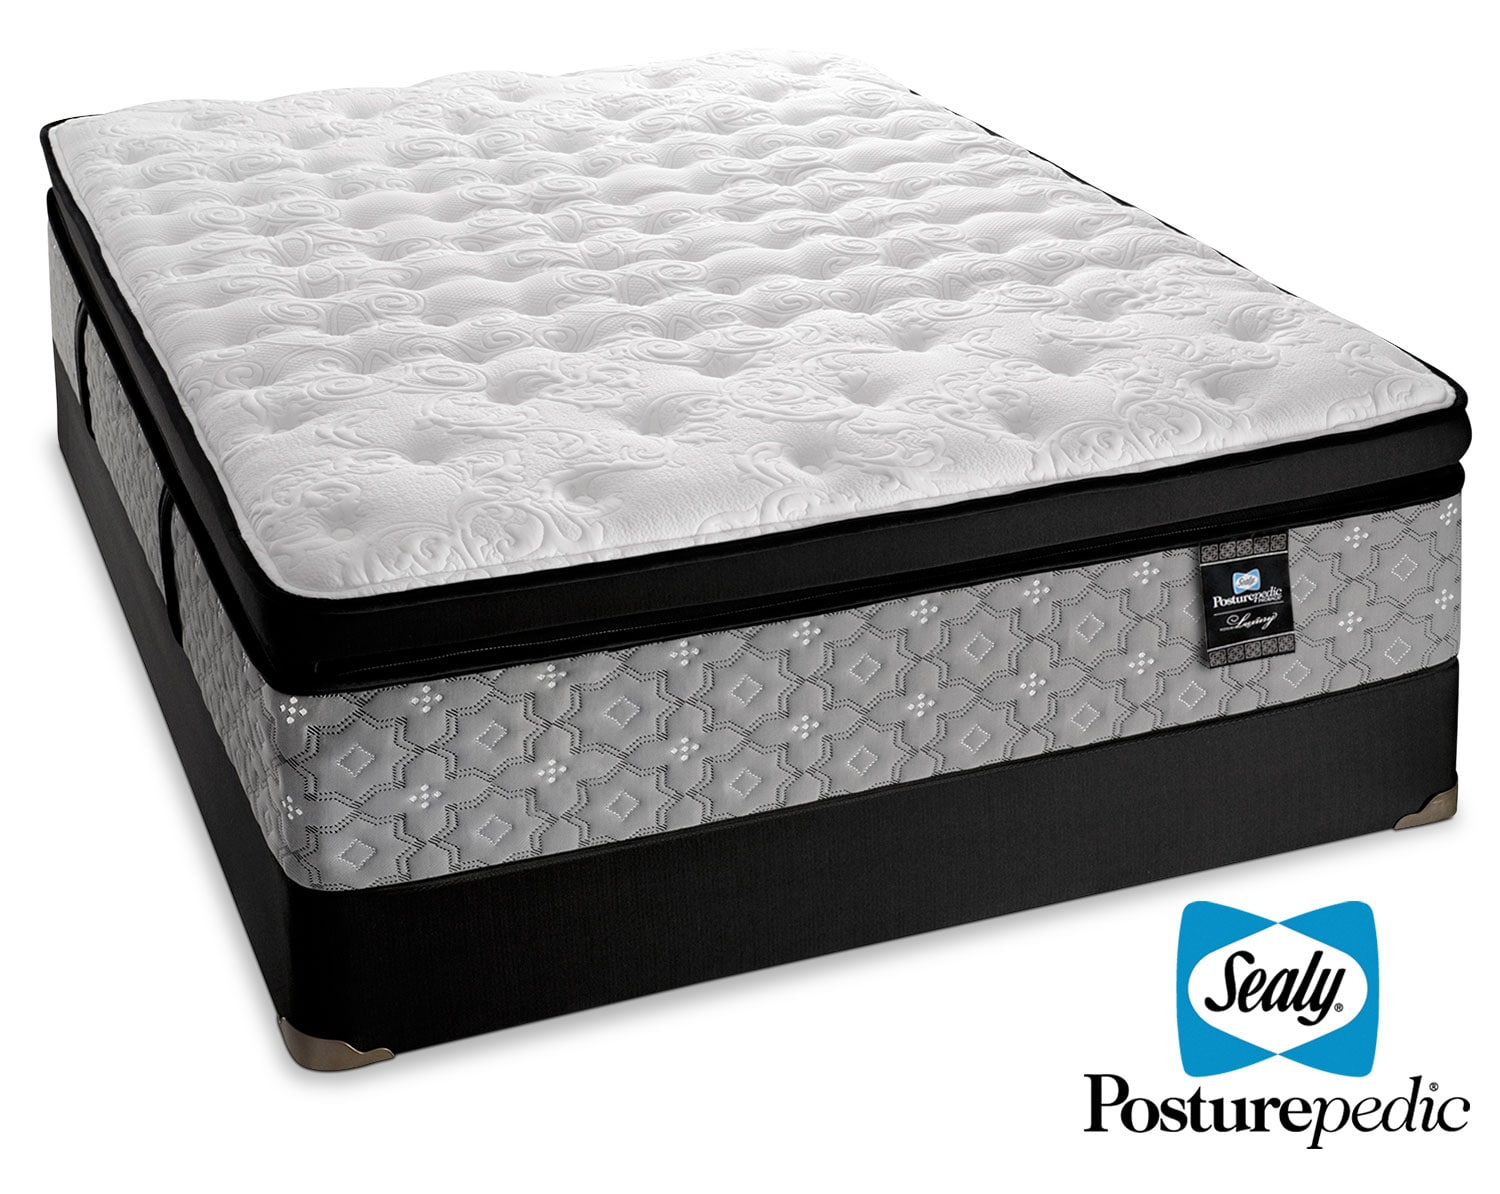 Sealy Spartacus Firm Queen Mattress/Boxspring Set